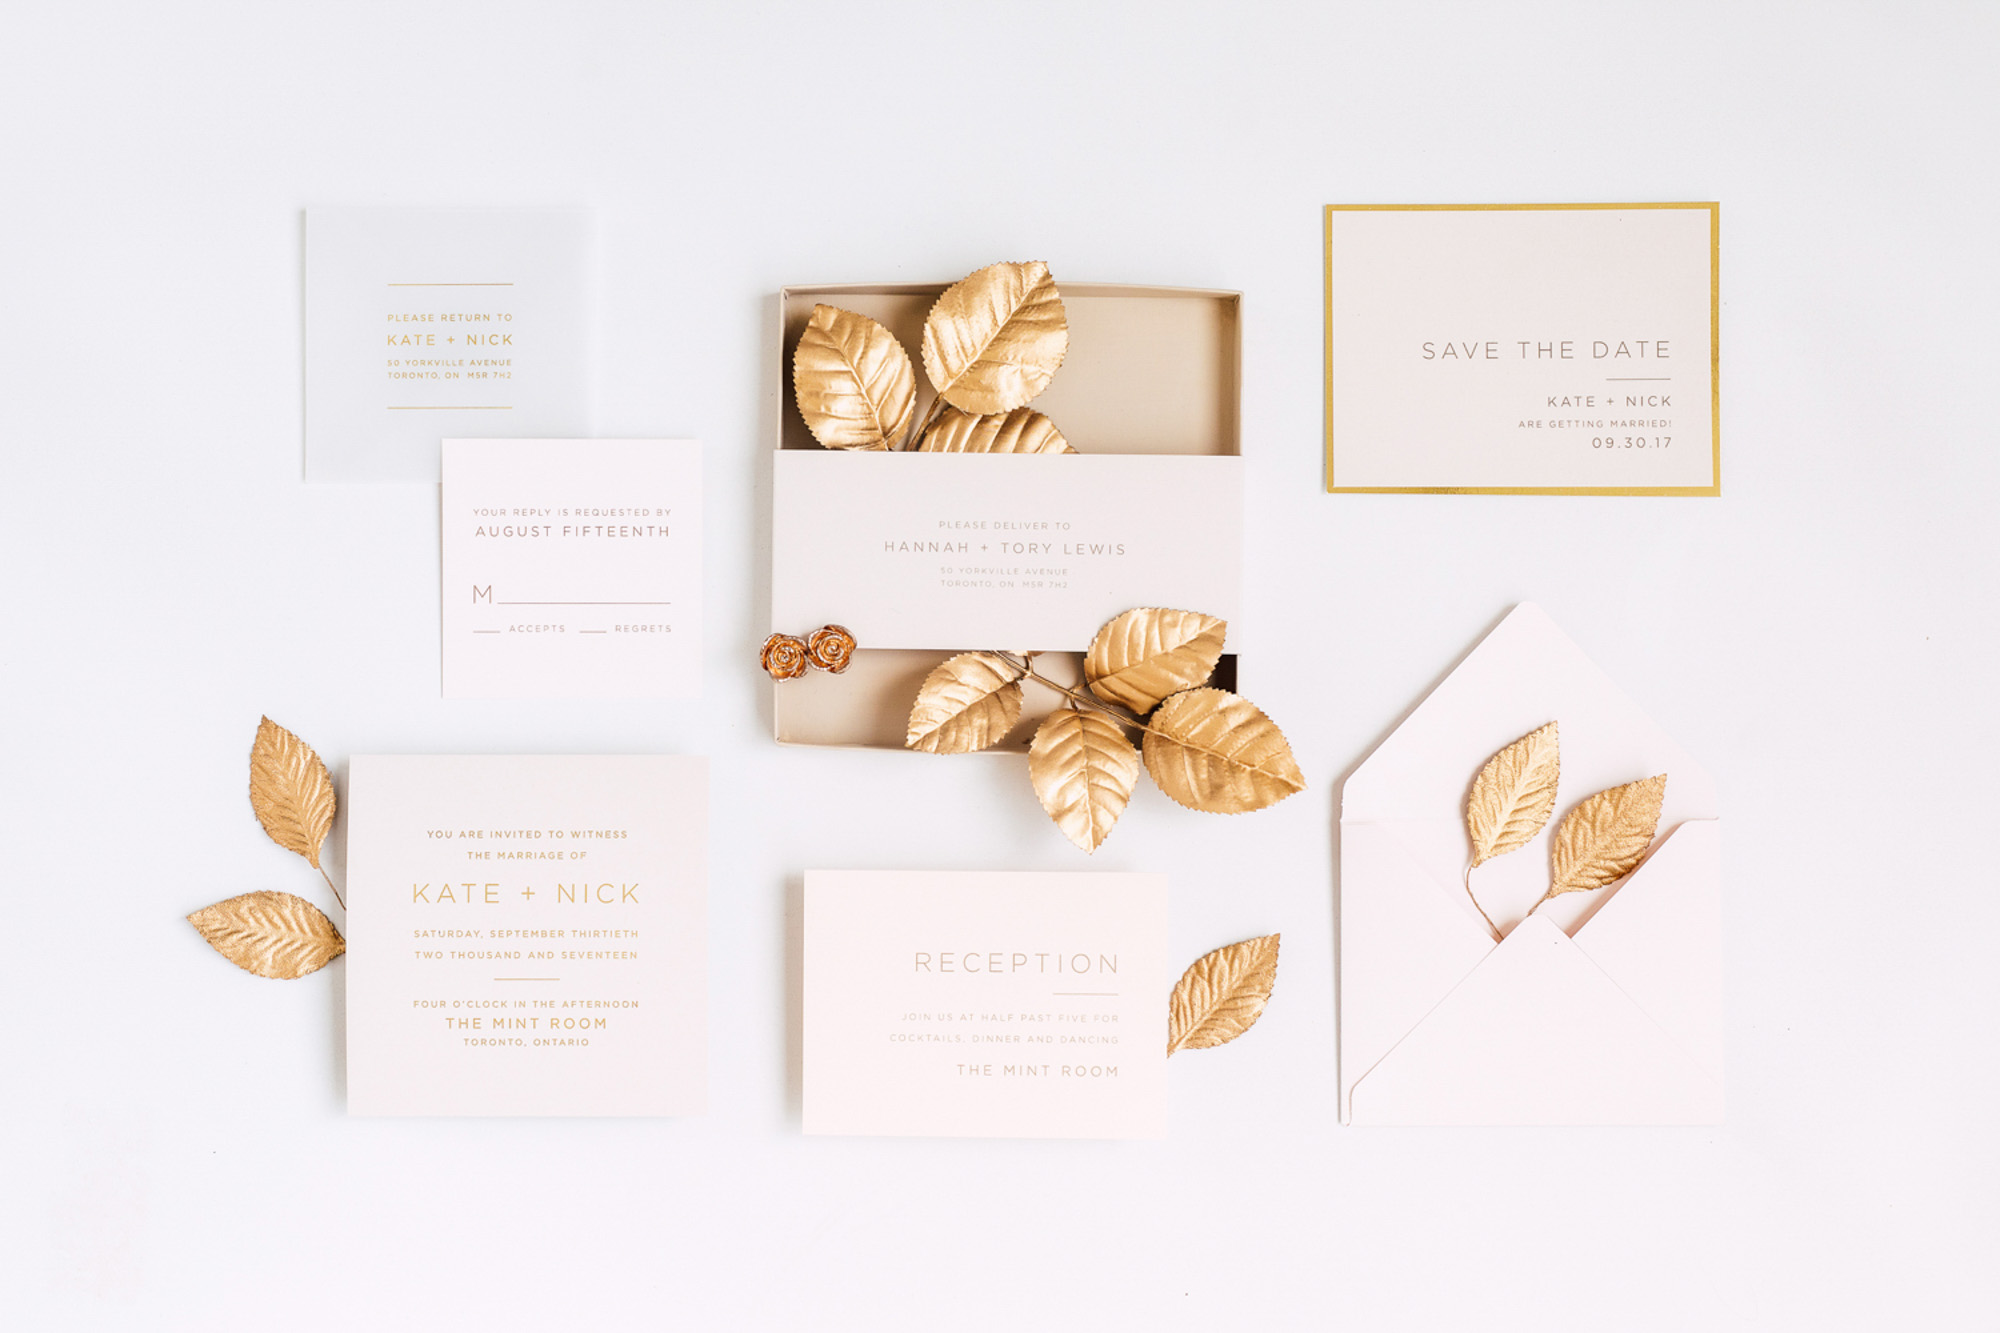 invite invitations gold accents